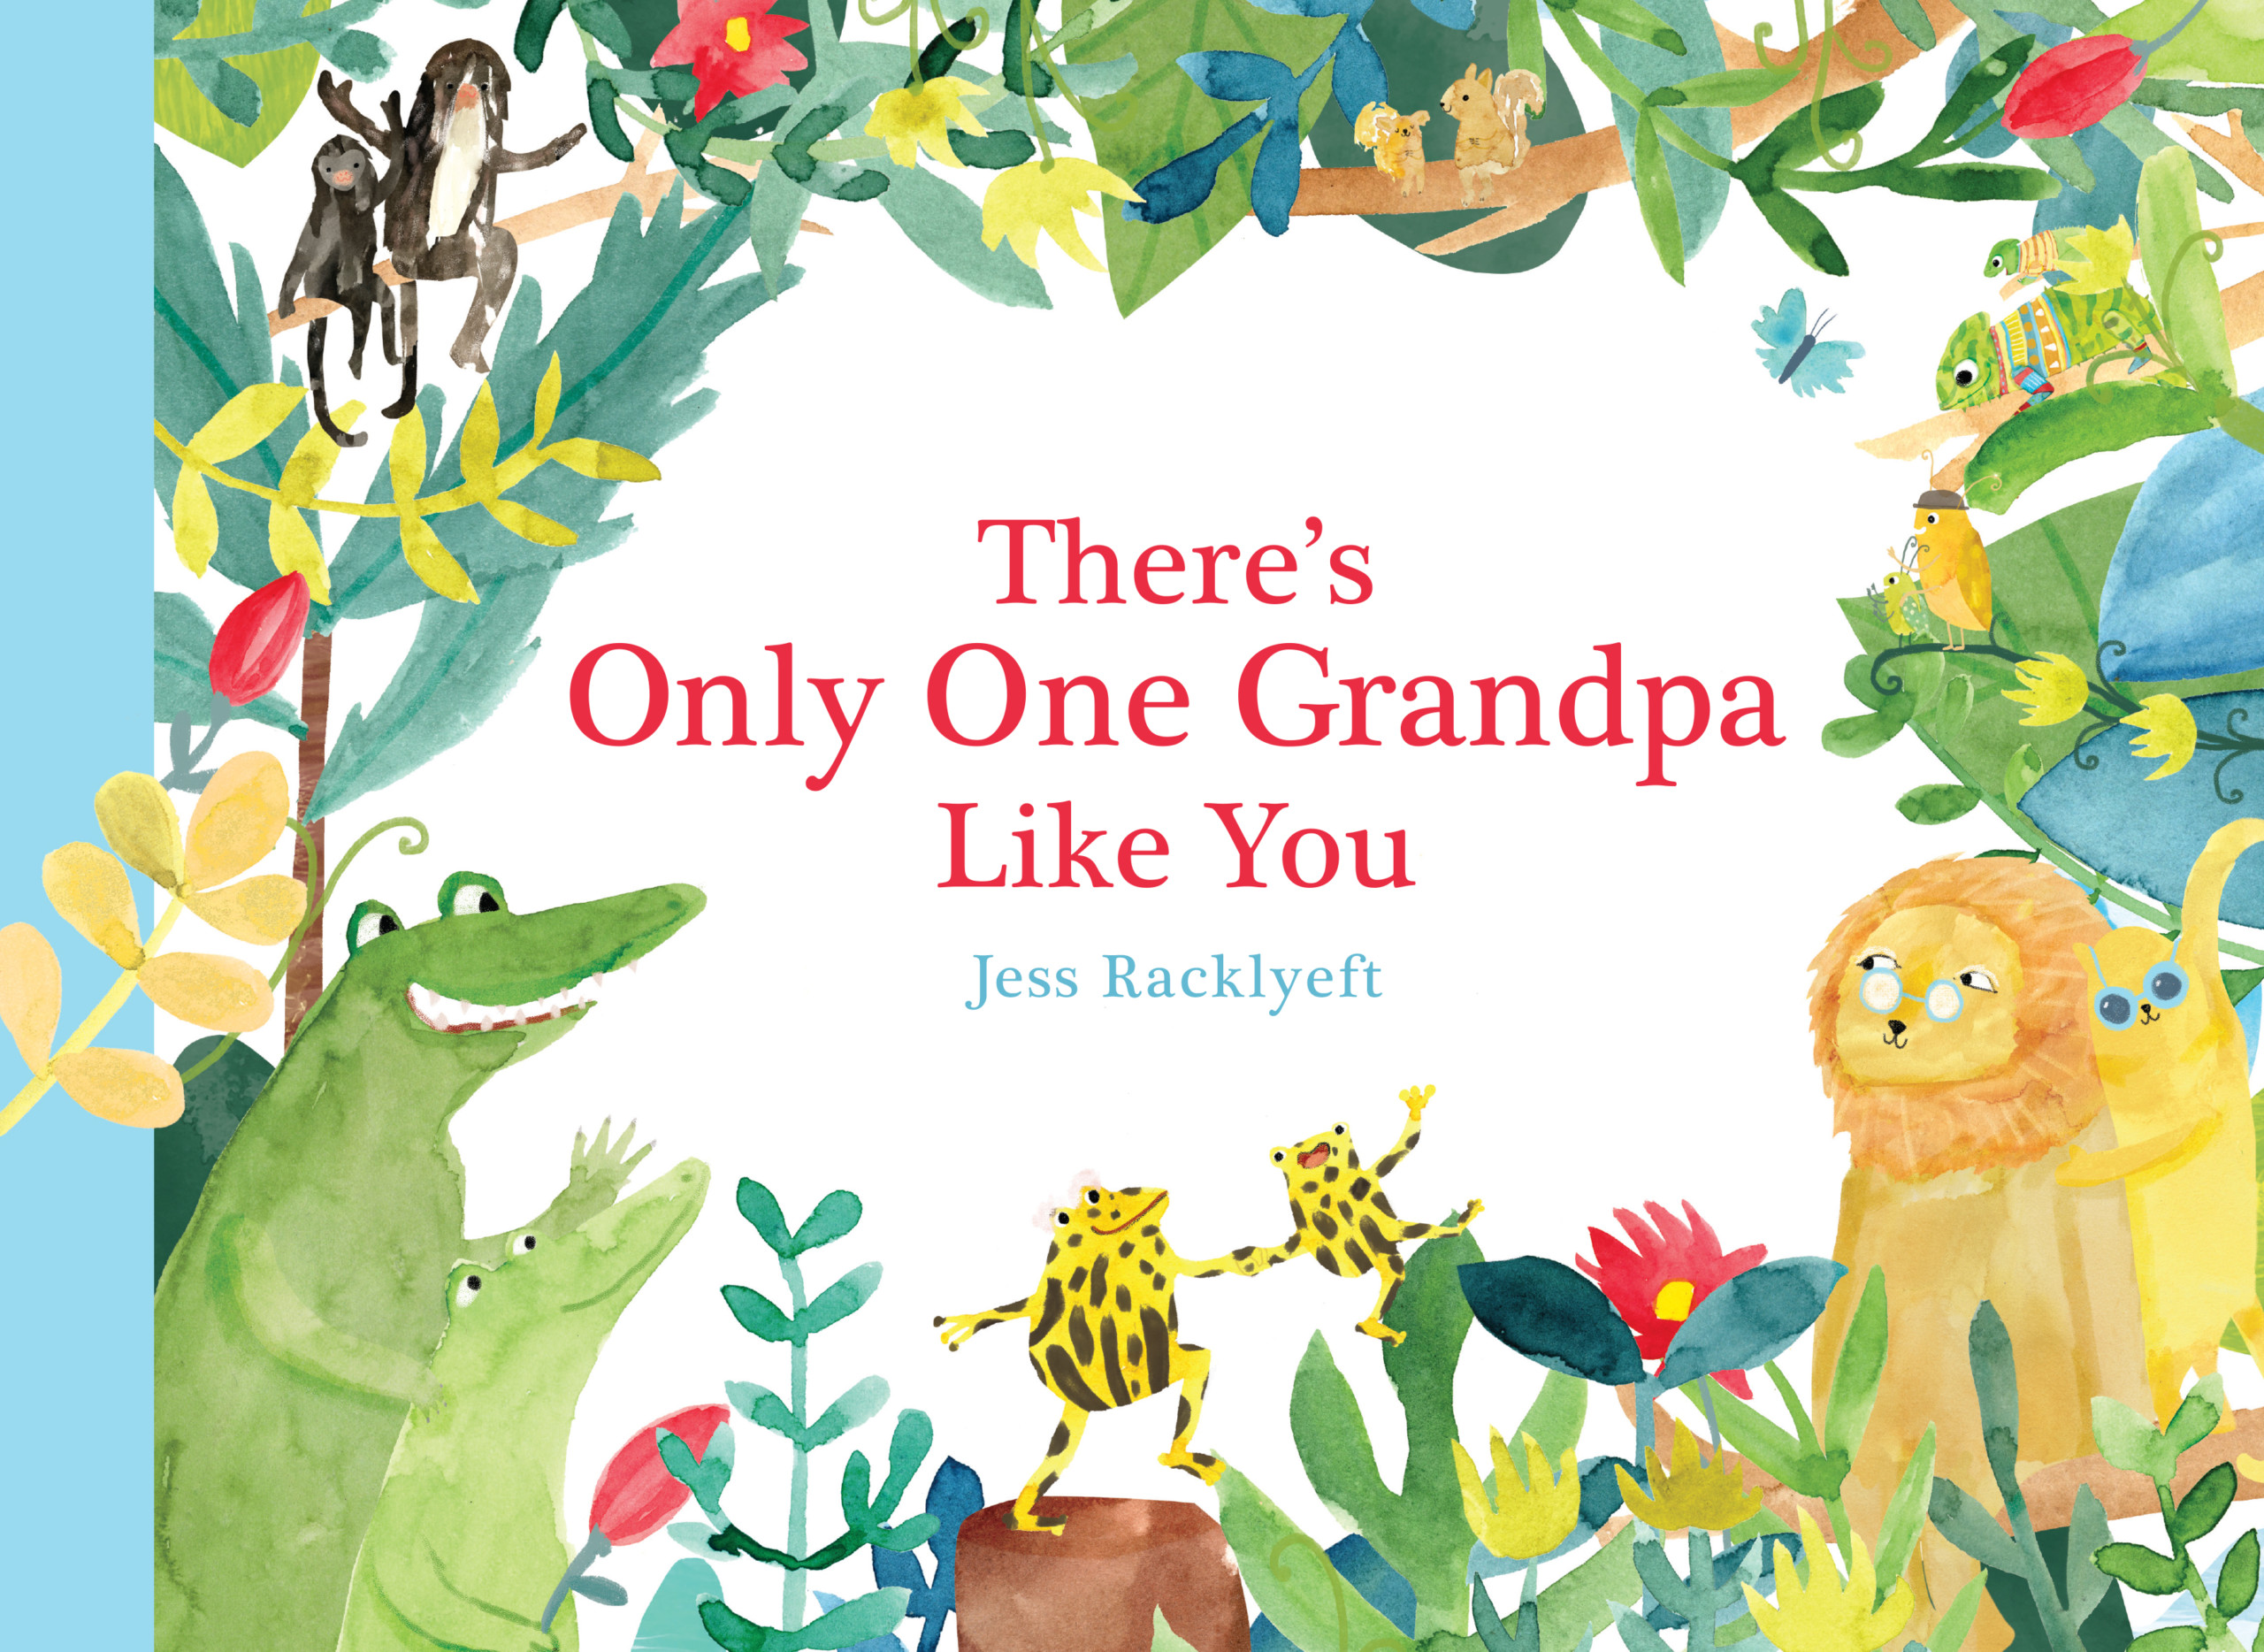 There's Only One One Grandpa Like You by Jess Racklyeft